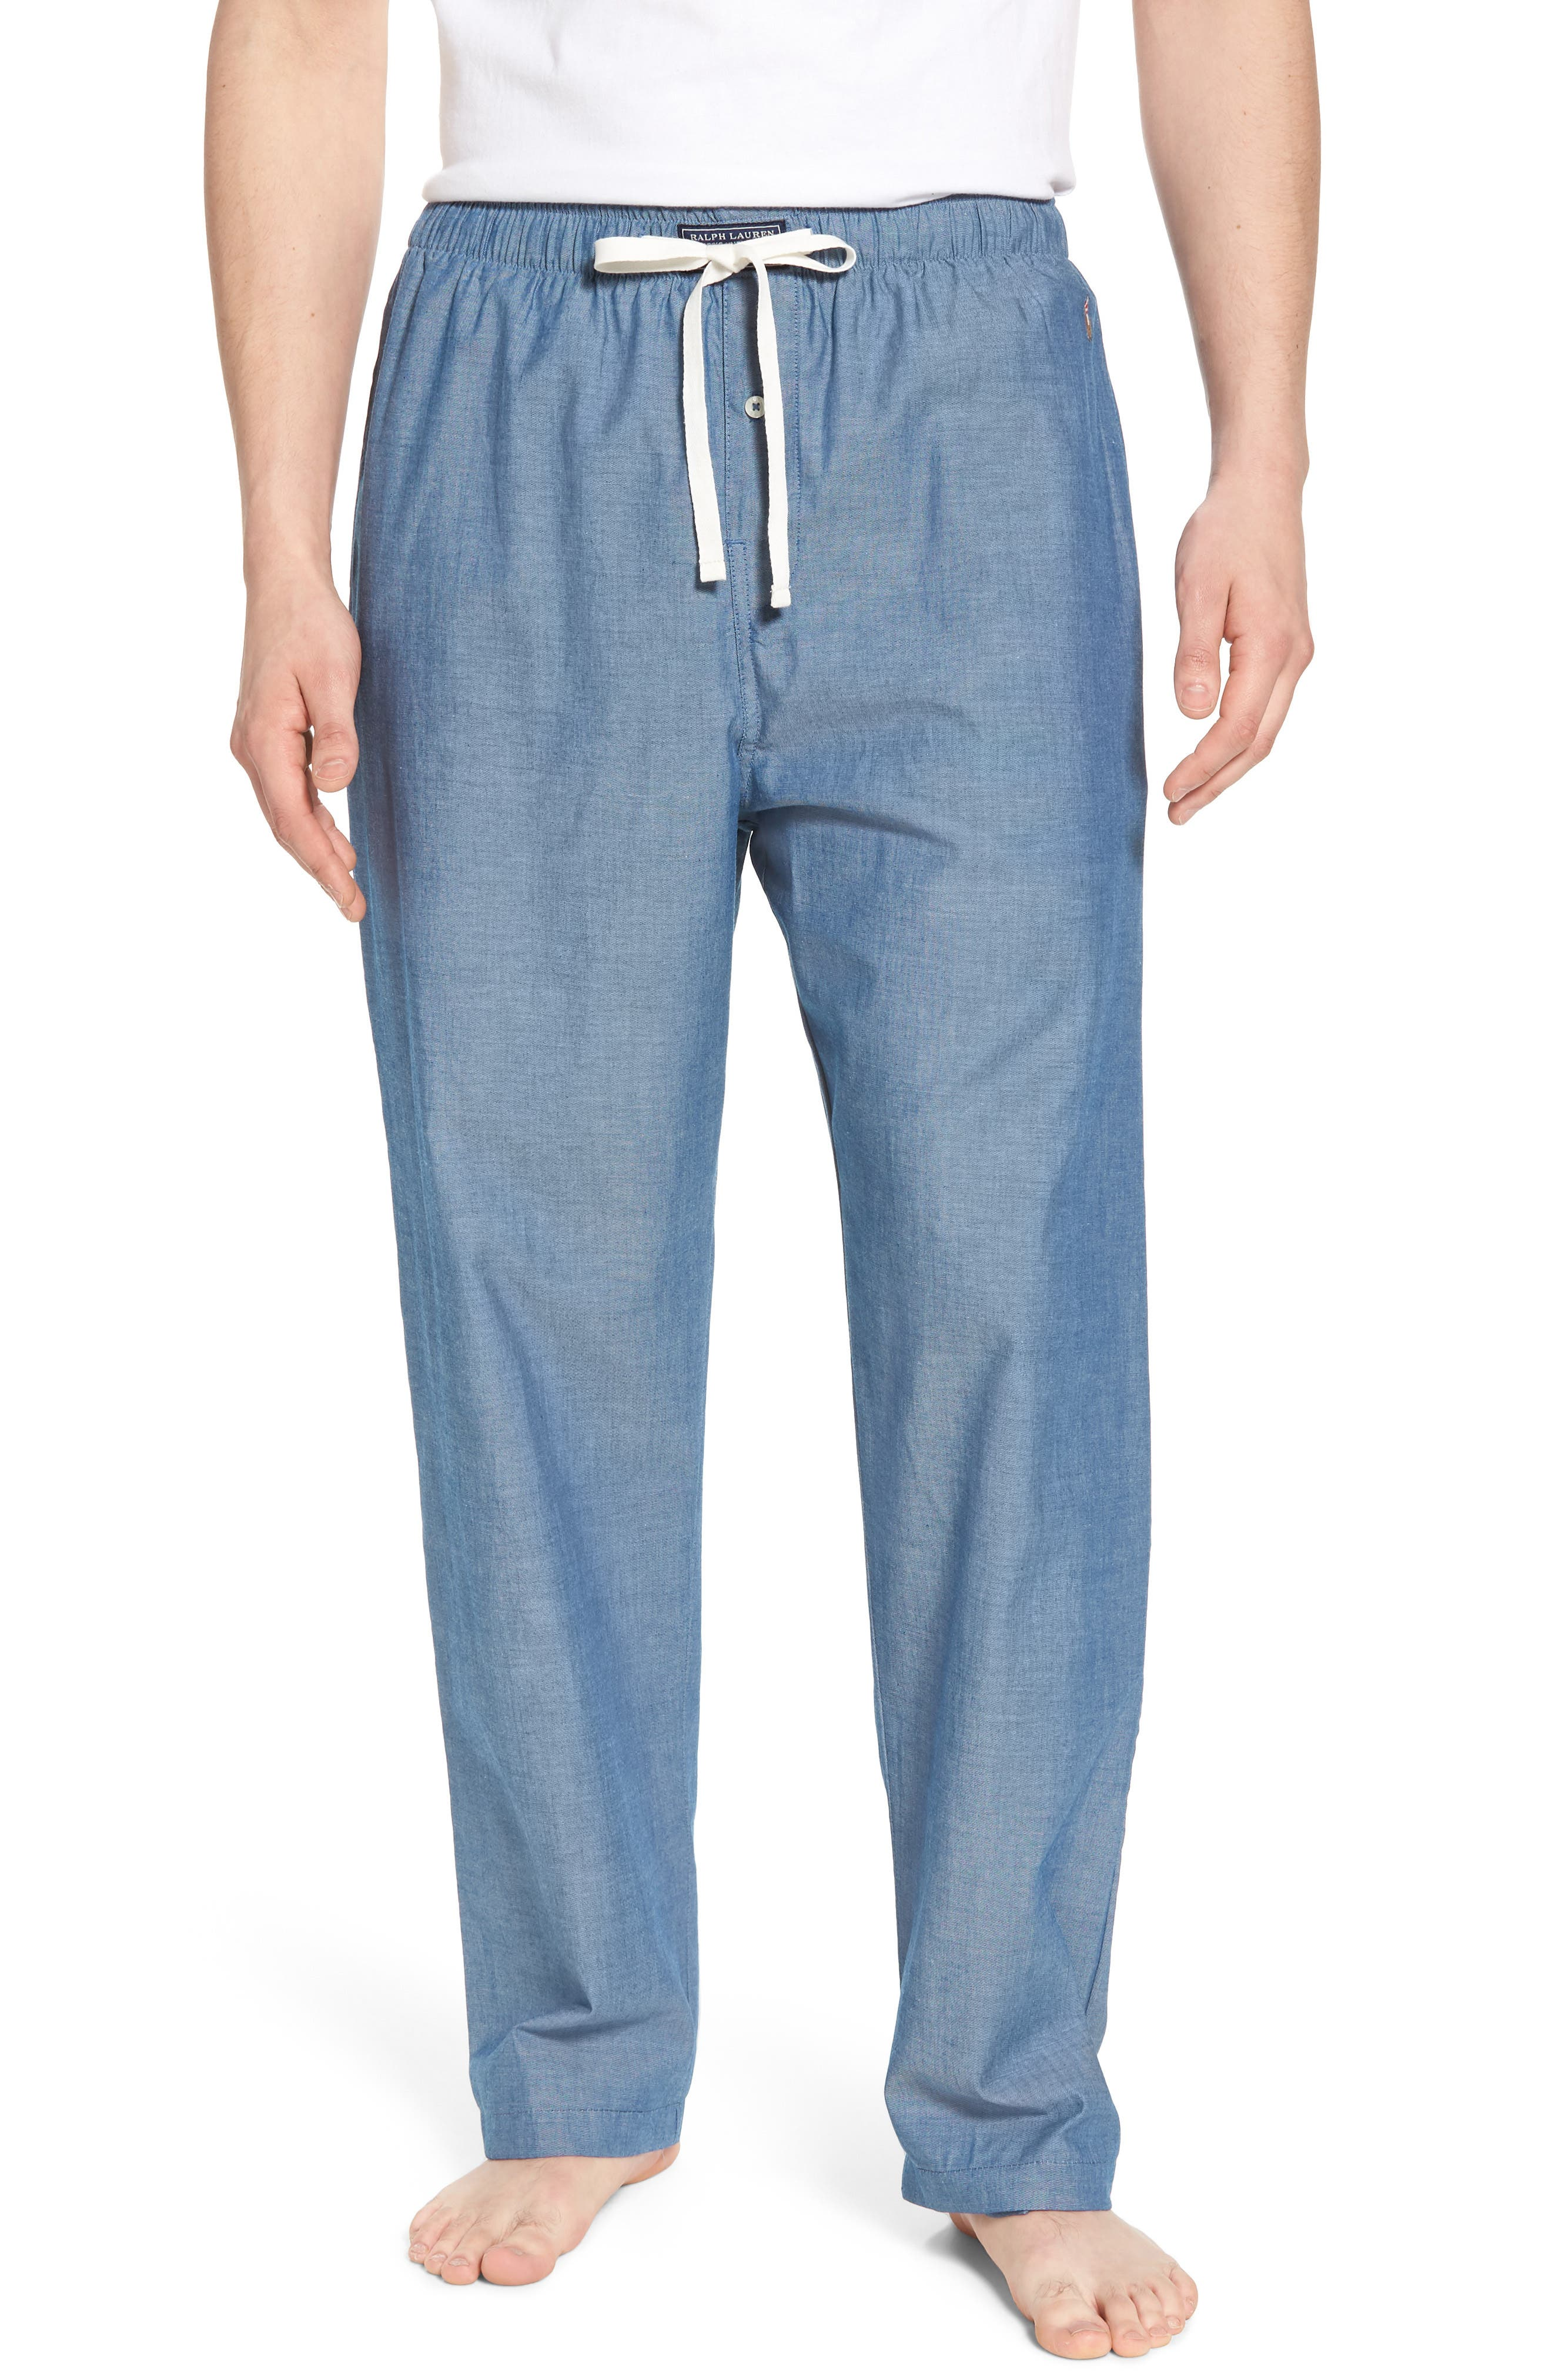 Chambray Woven Lounge Pants,                             Main thumbnail 1, color,                             424